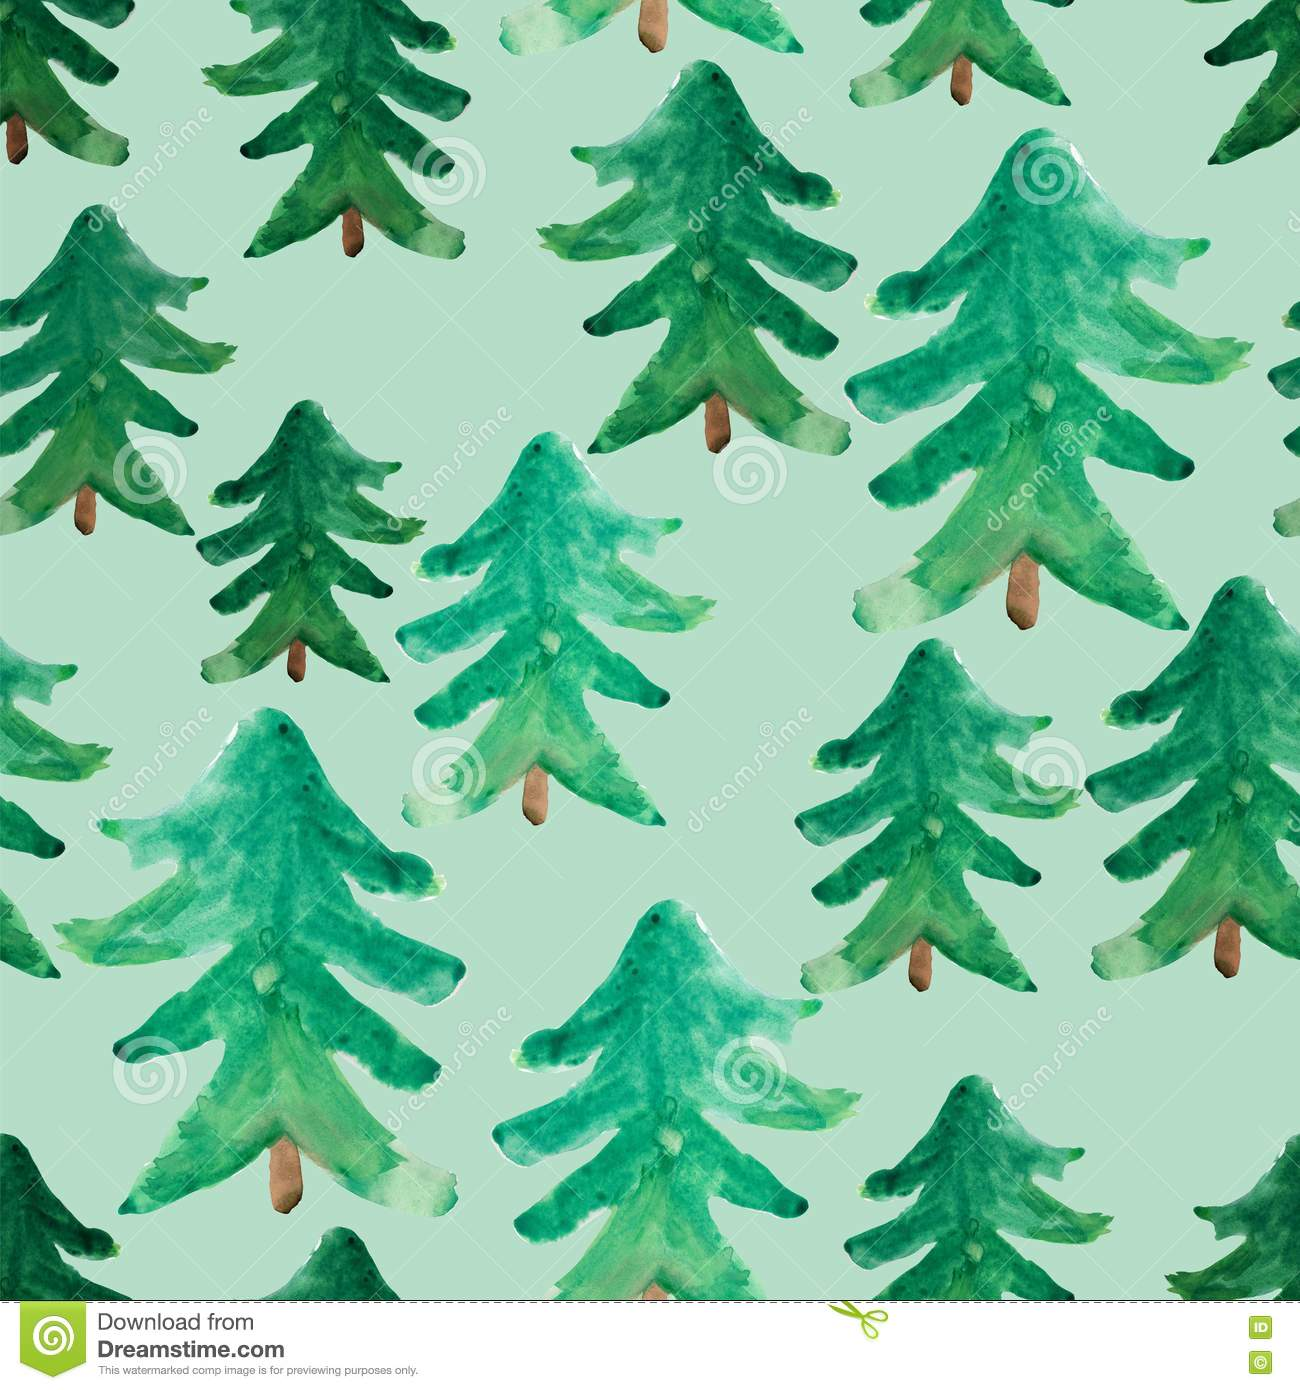 Christmas Tree Pattern.Watercolor Christmas Trees Seamless Pattern Winter